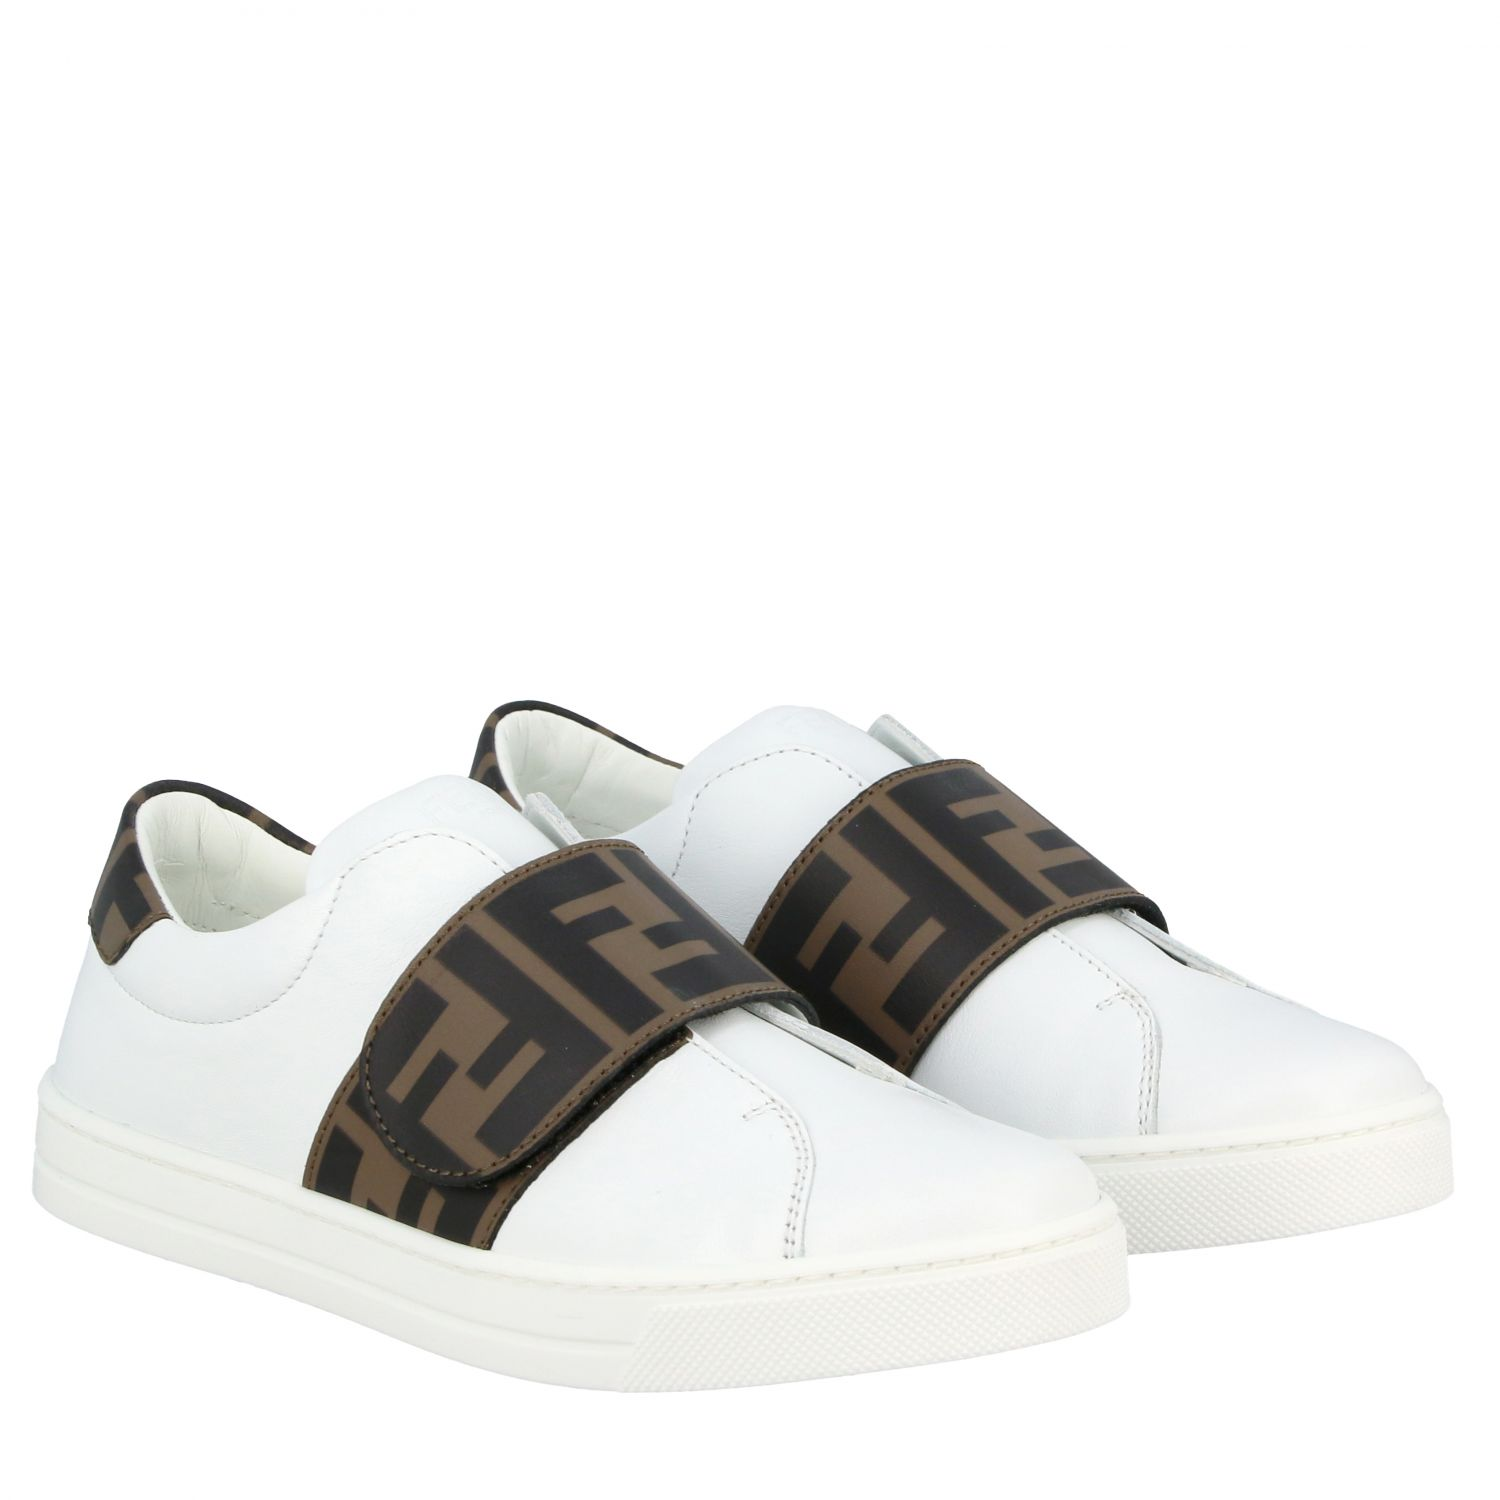 Fendi leather sneakers with FF Fendi